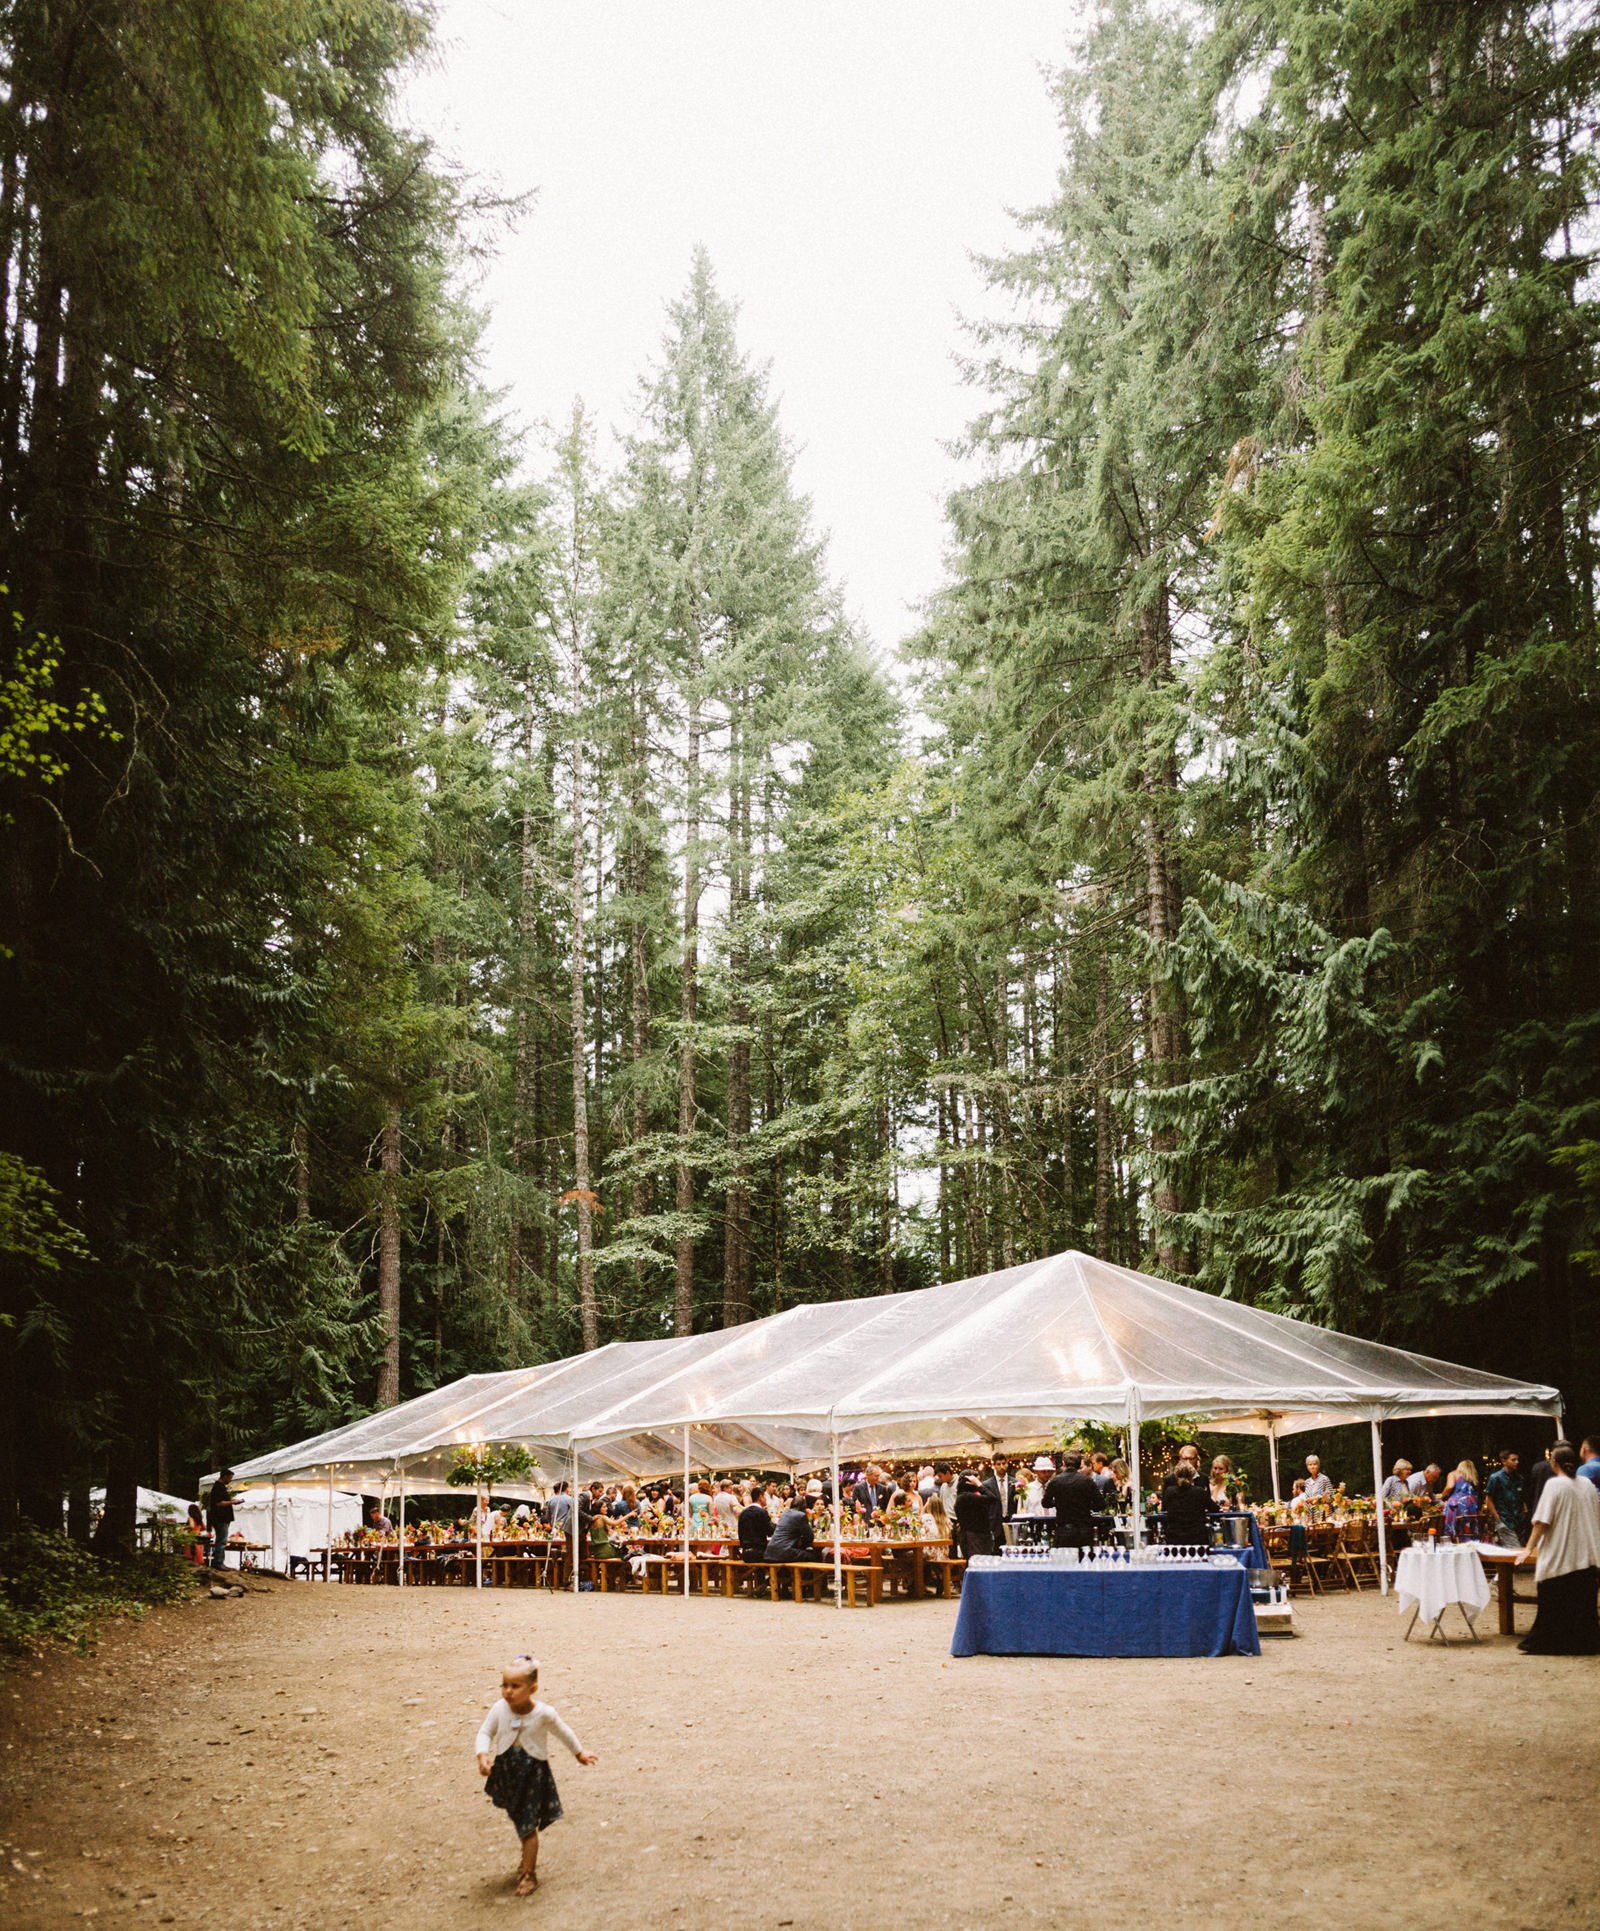 zanny-noah-128 LAKE CUSHMAN WEDDING